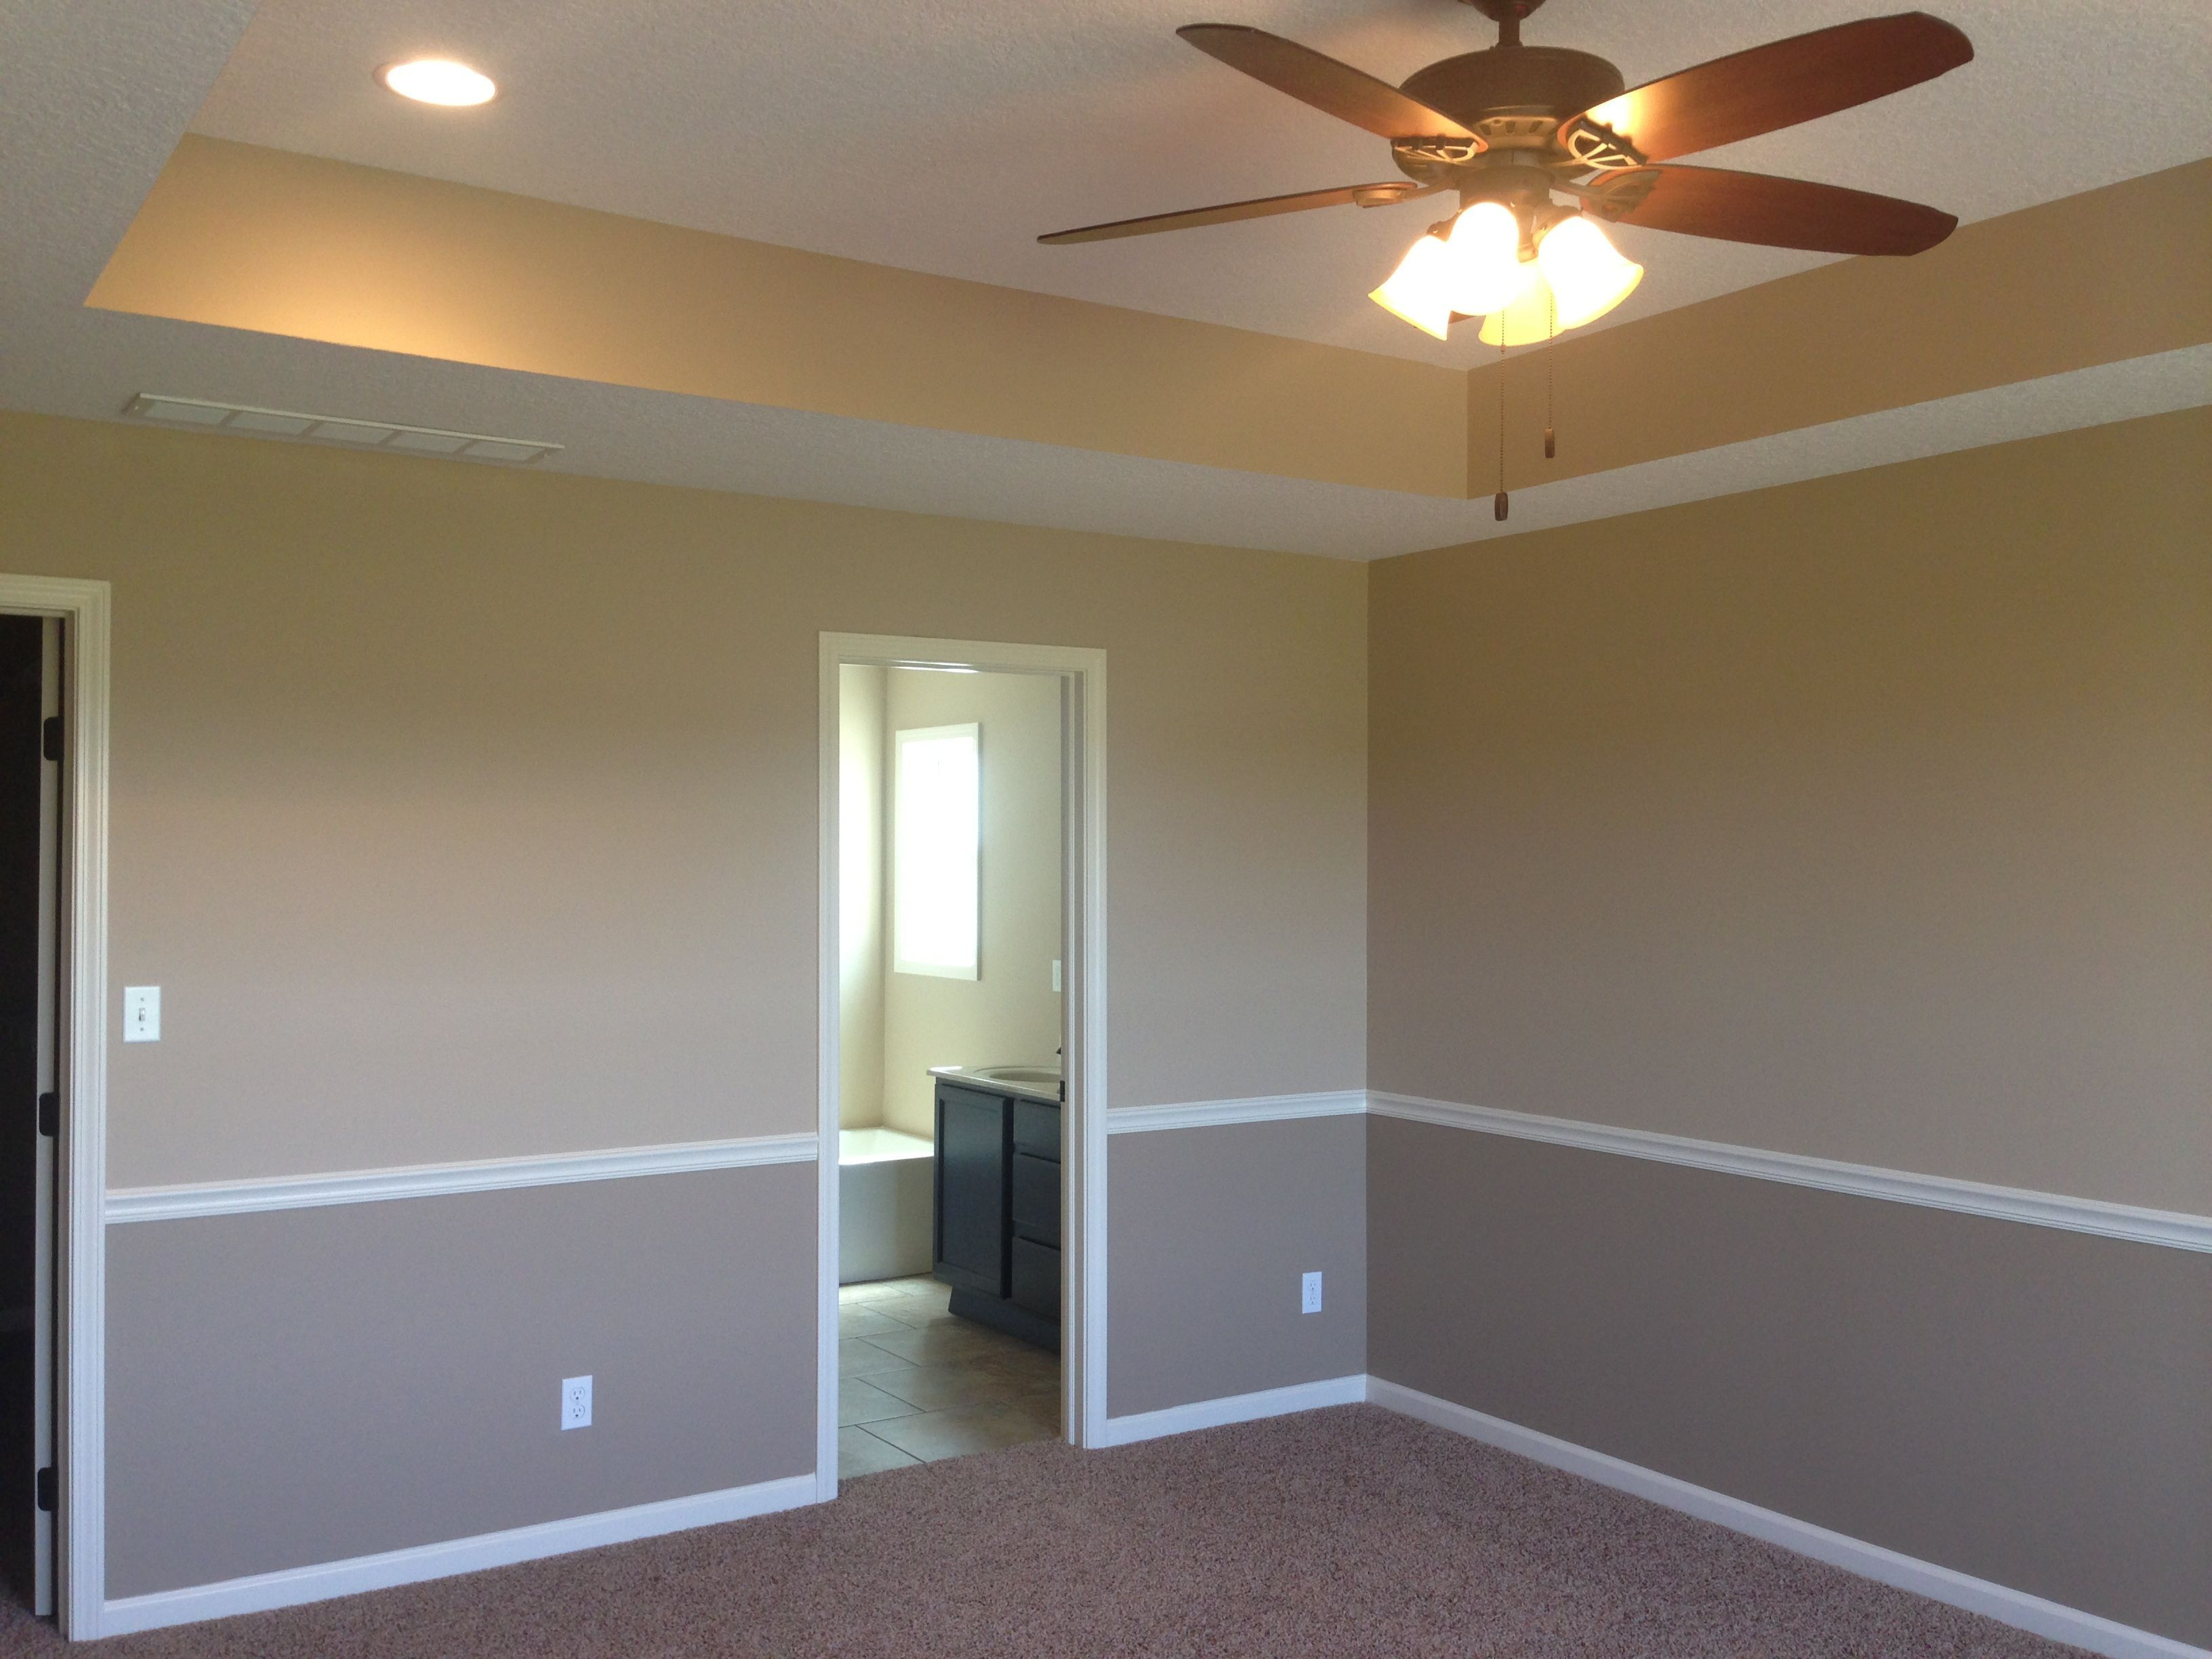 The Basic House Painting Ideas To Follow For The Best Look Of Your House Decorifusta Living Room Wall Color Room Wall Colors Dining Room Paint Colors